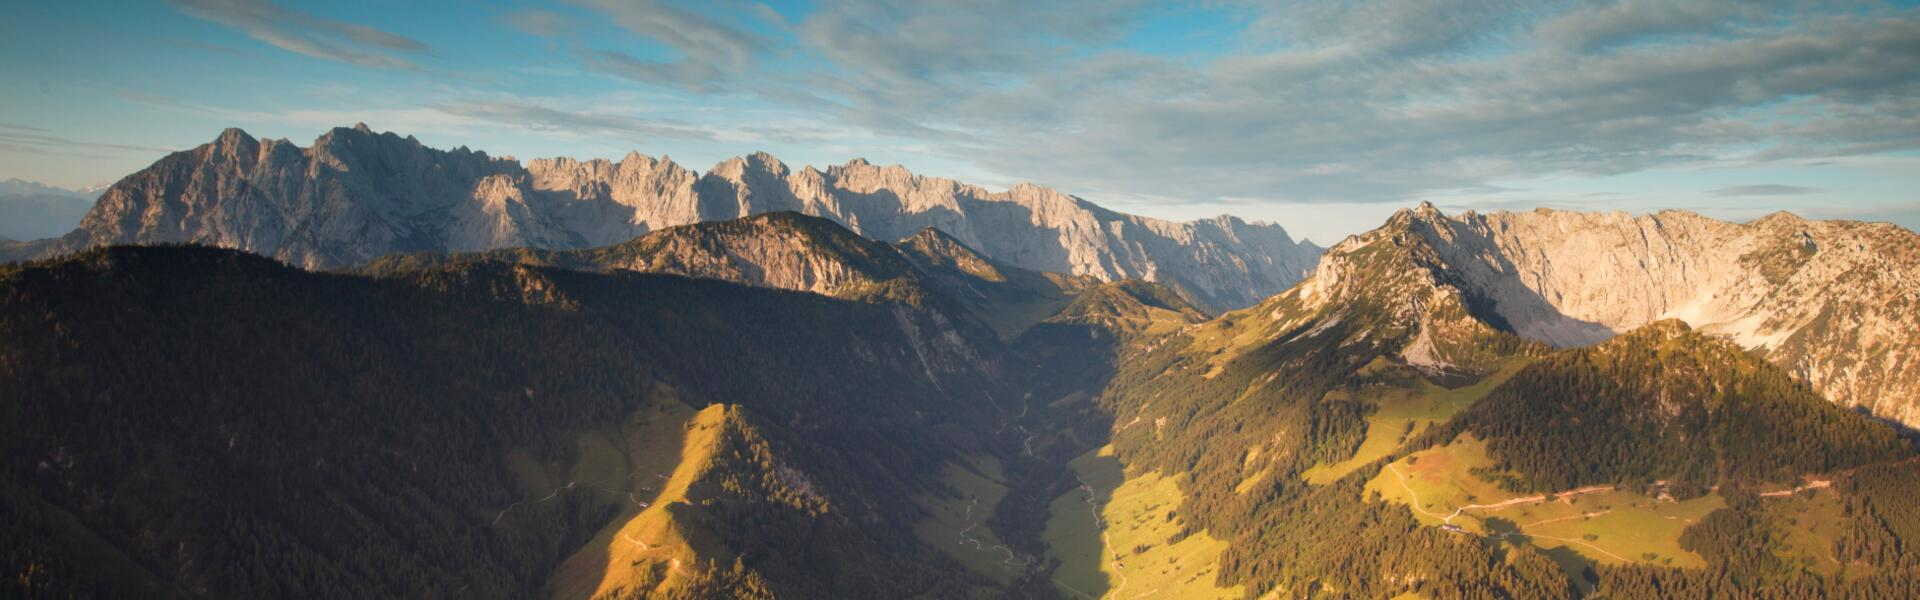 mountains in kaiserwinkl | © Bernhard Bergmann